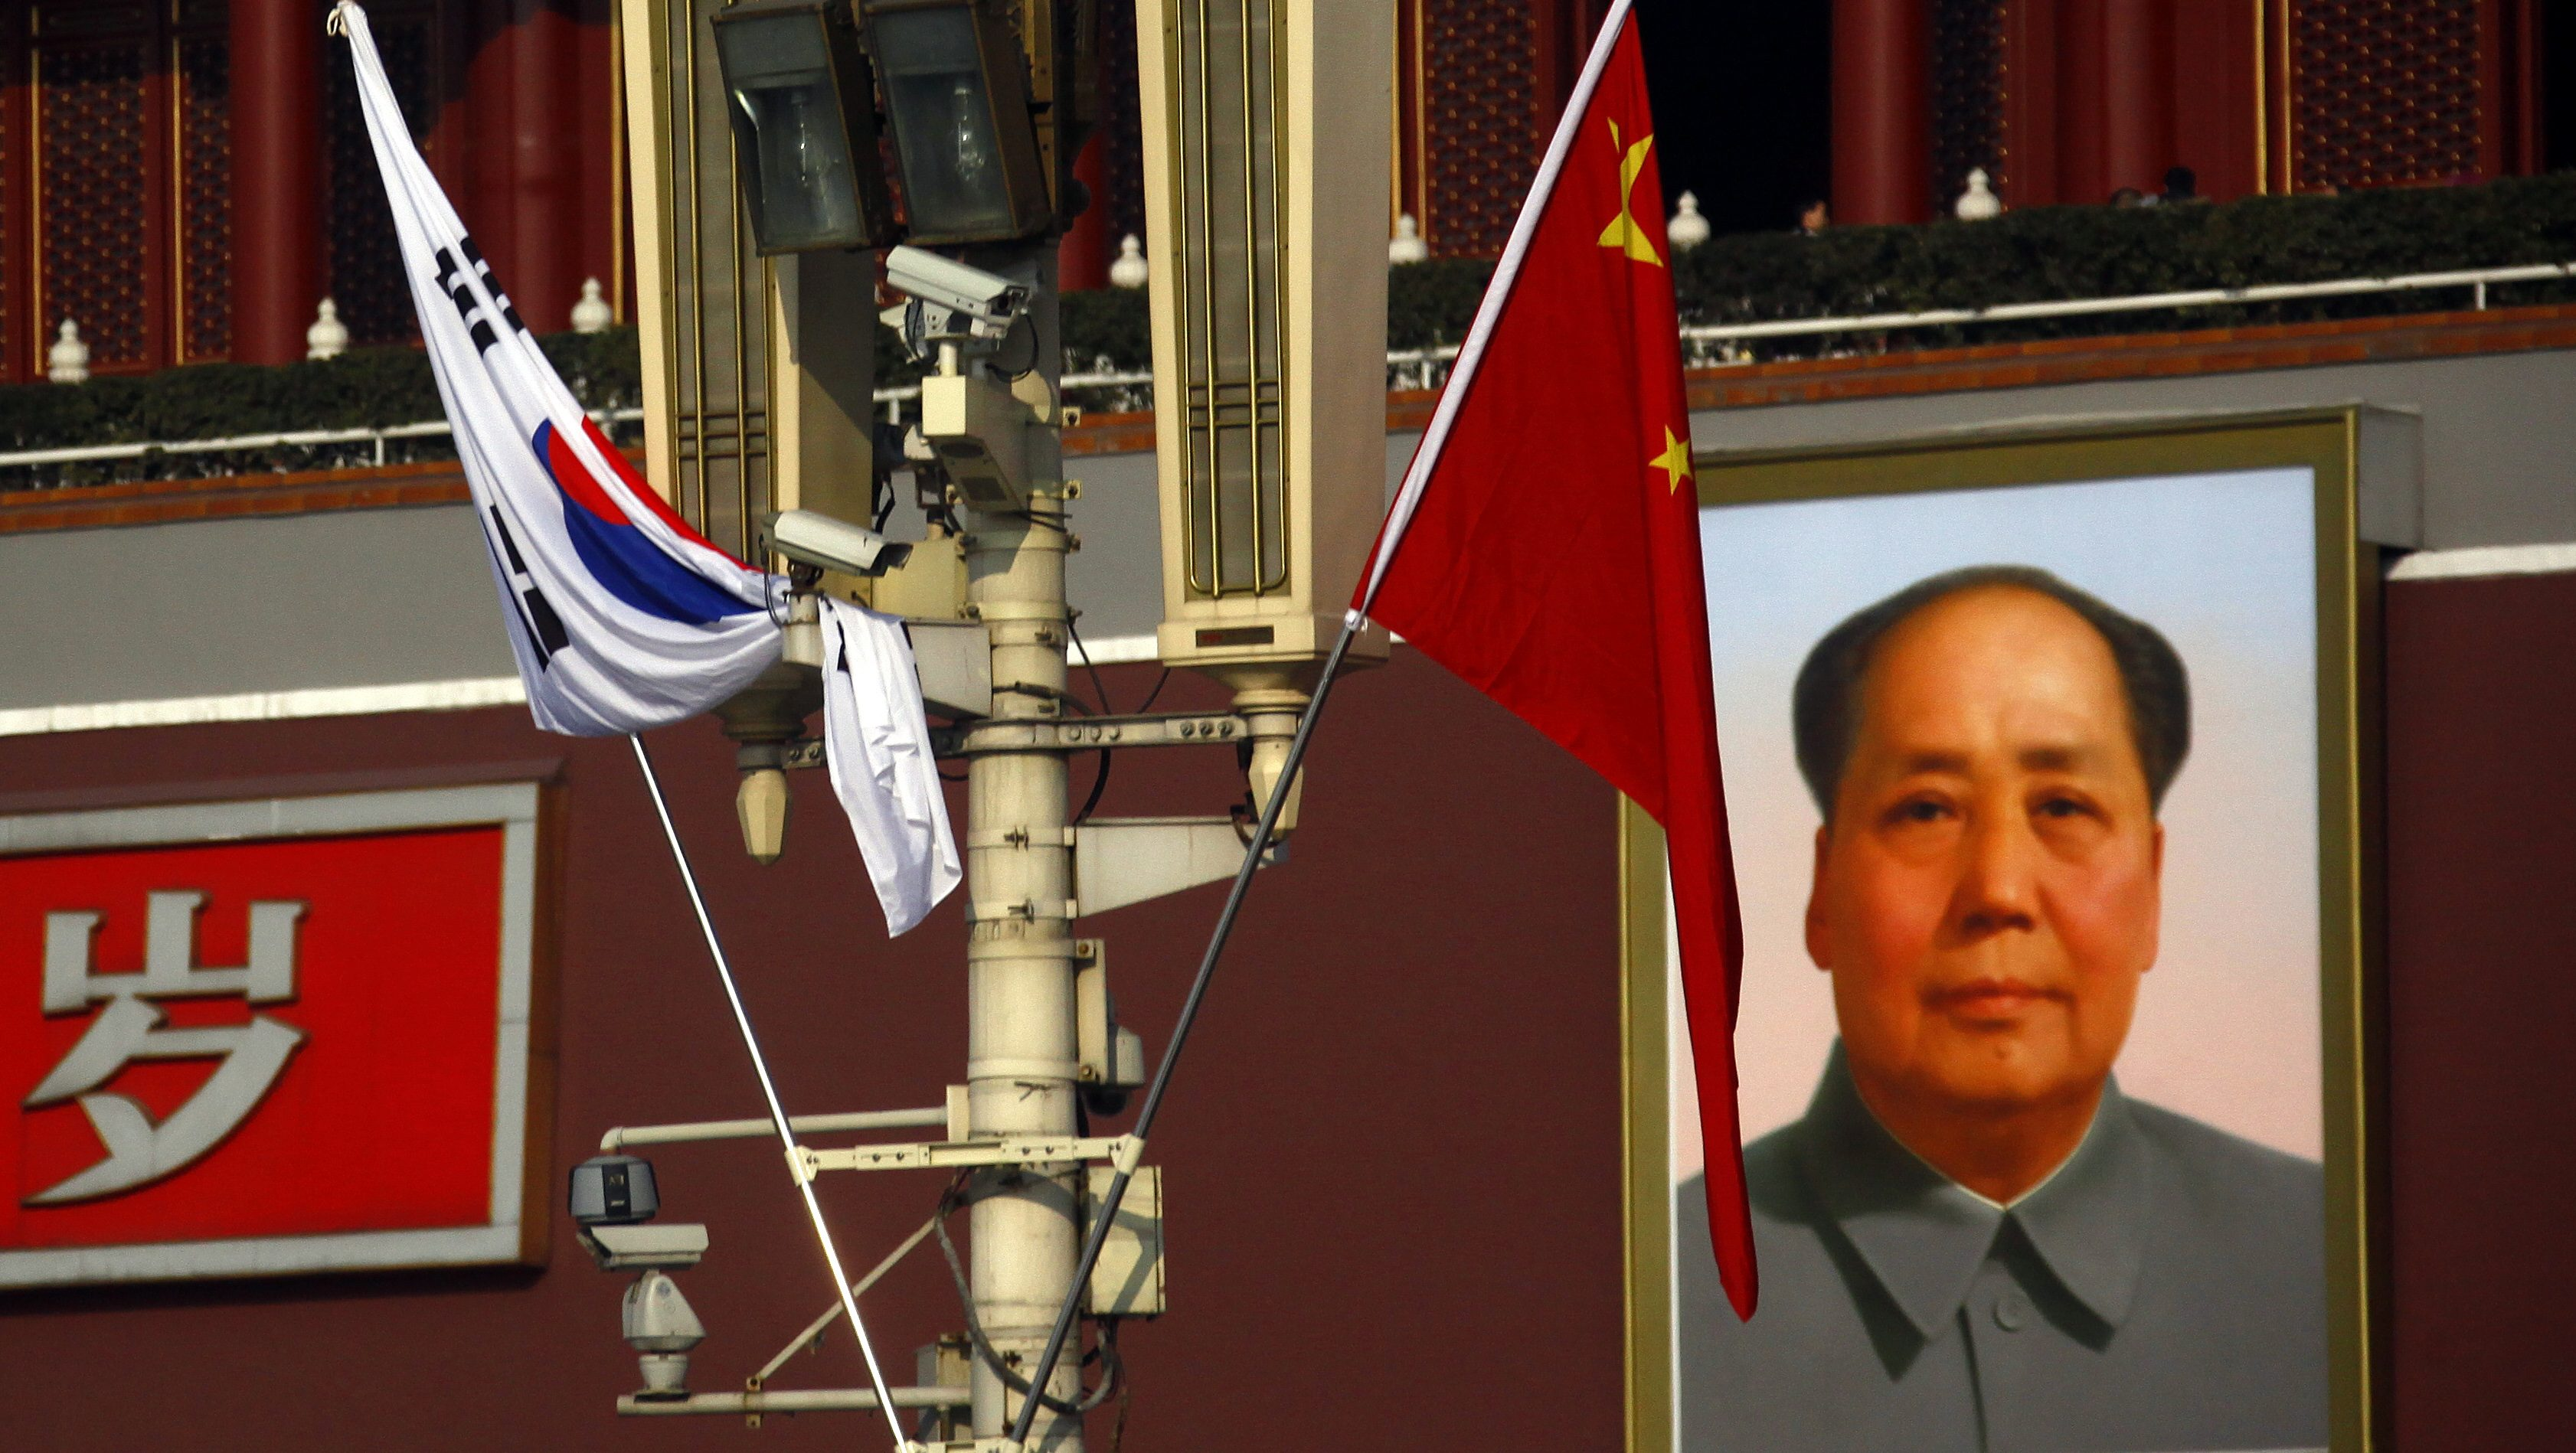 South Korean and Chinese national flags hang from a pole in front of the giant portrait of former Chinese chairman Mao Zedong at Beijing's Tiananmen Square January 9, 2012. South Korean President Lee Myung-bak is on a three-day trip to China, his second in four years, and will ask China's leaders to use their influence to lean on North Korea to show restraint amid a delicate transition to a new leadership.